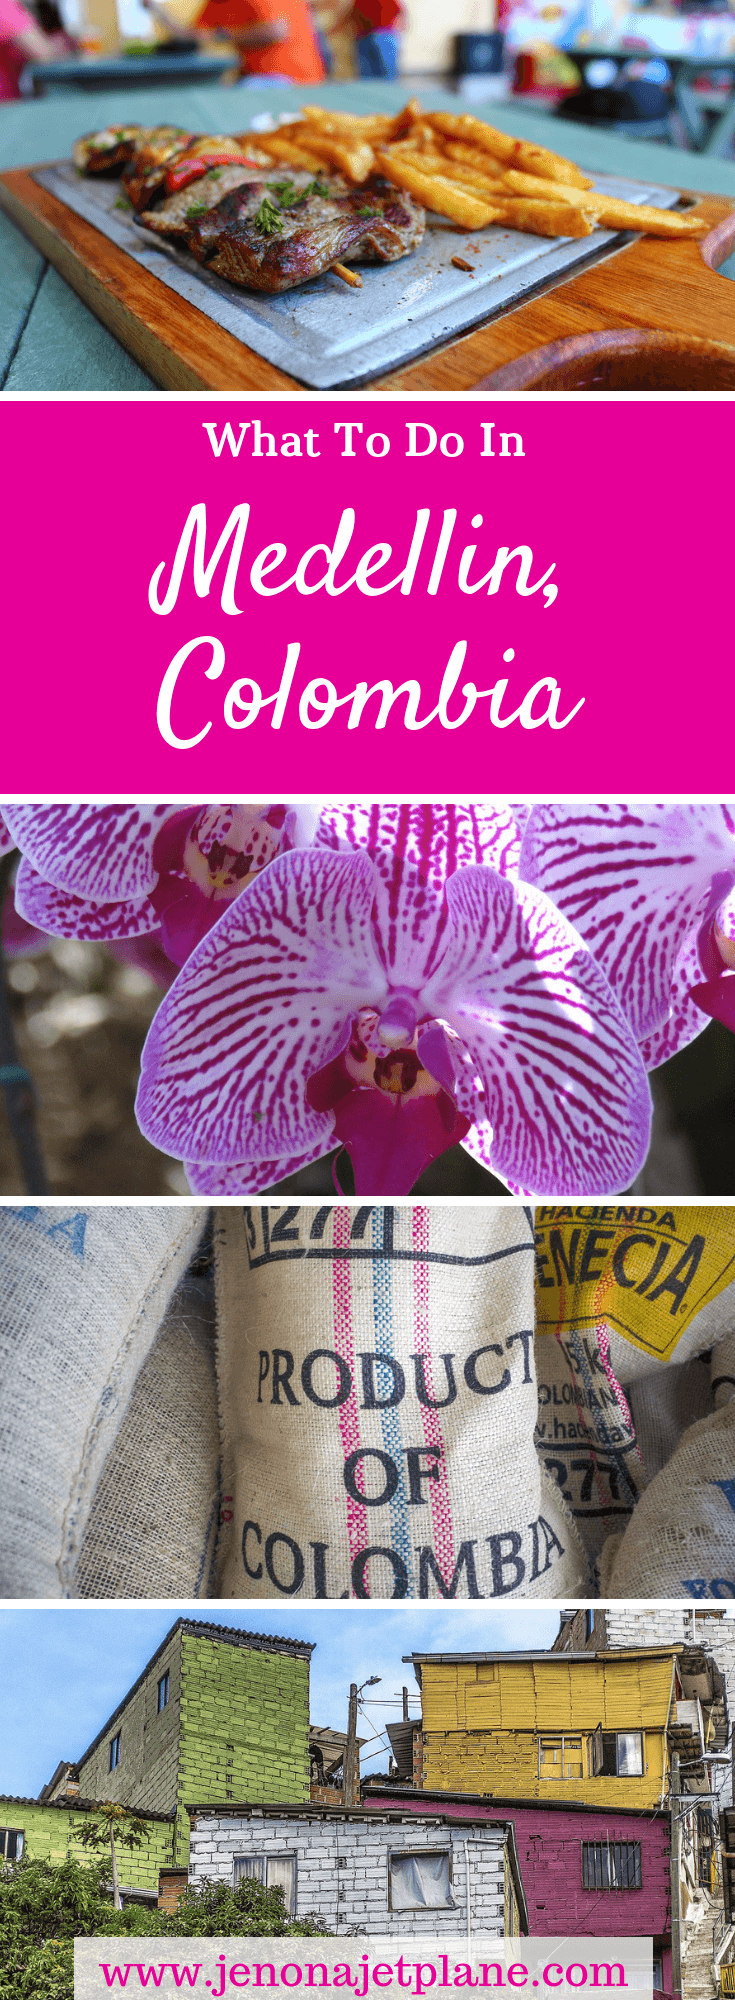 Looking for the best things to do in Medellin, Colombia? From restaurant recommendations to the best outdoor art installations, we got you covered! Save to your travel board for inspiration. #medellin #medellincolombia #medellincolombiathingtodo #southamericatravel #southamerica #colombiatravel